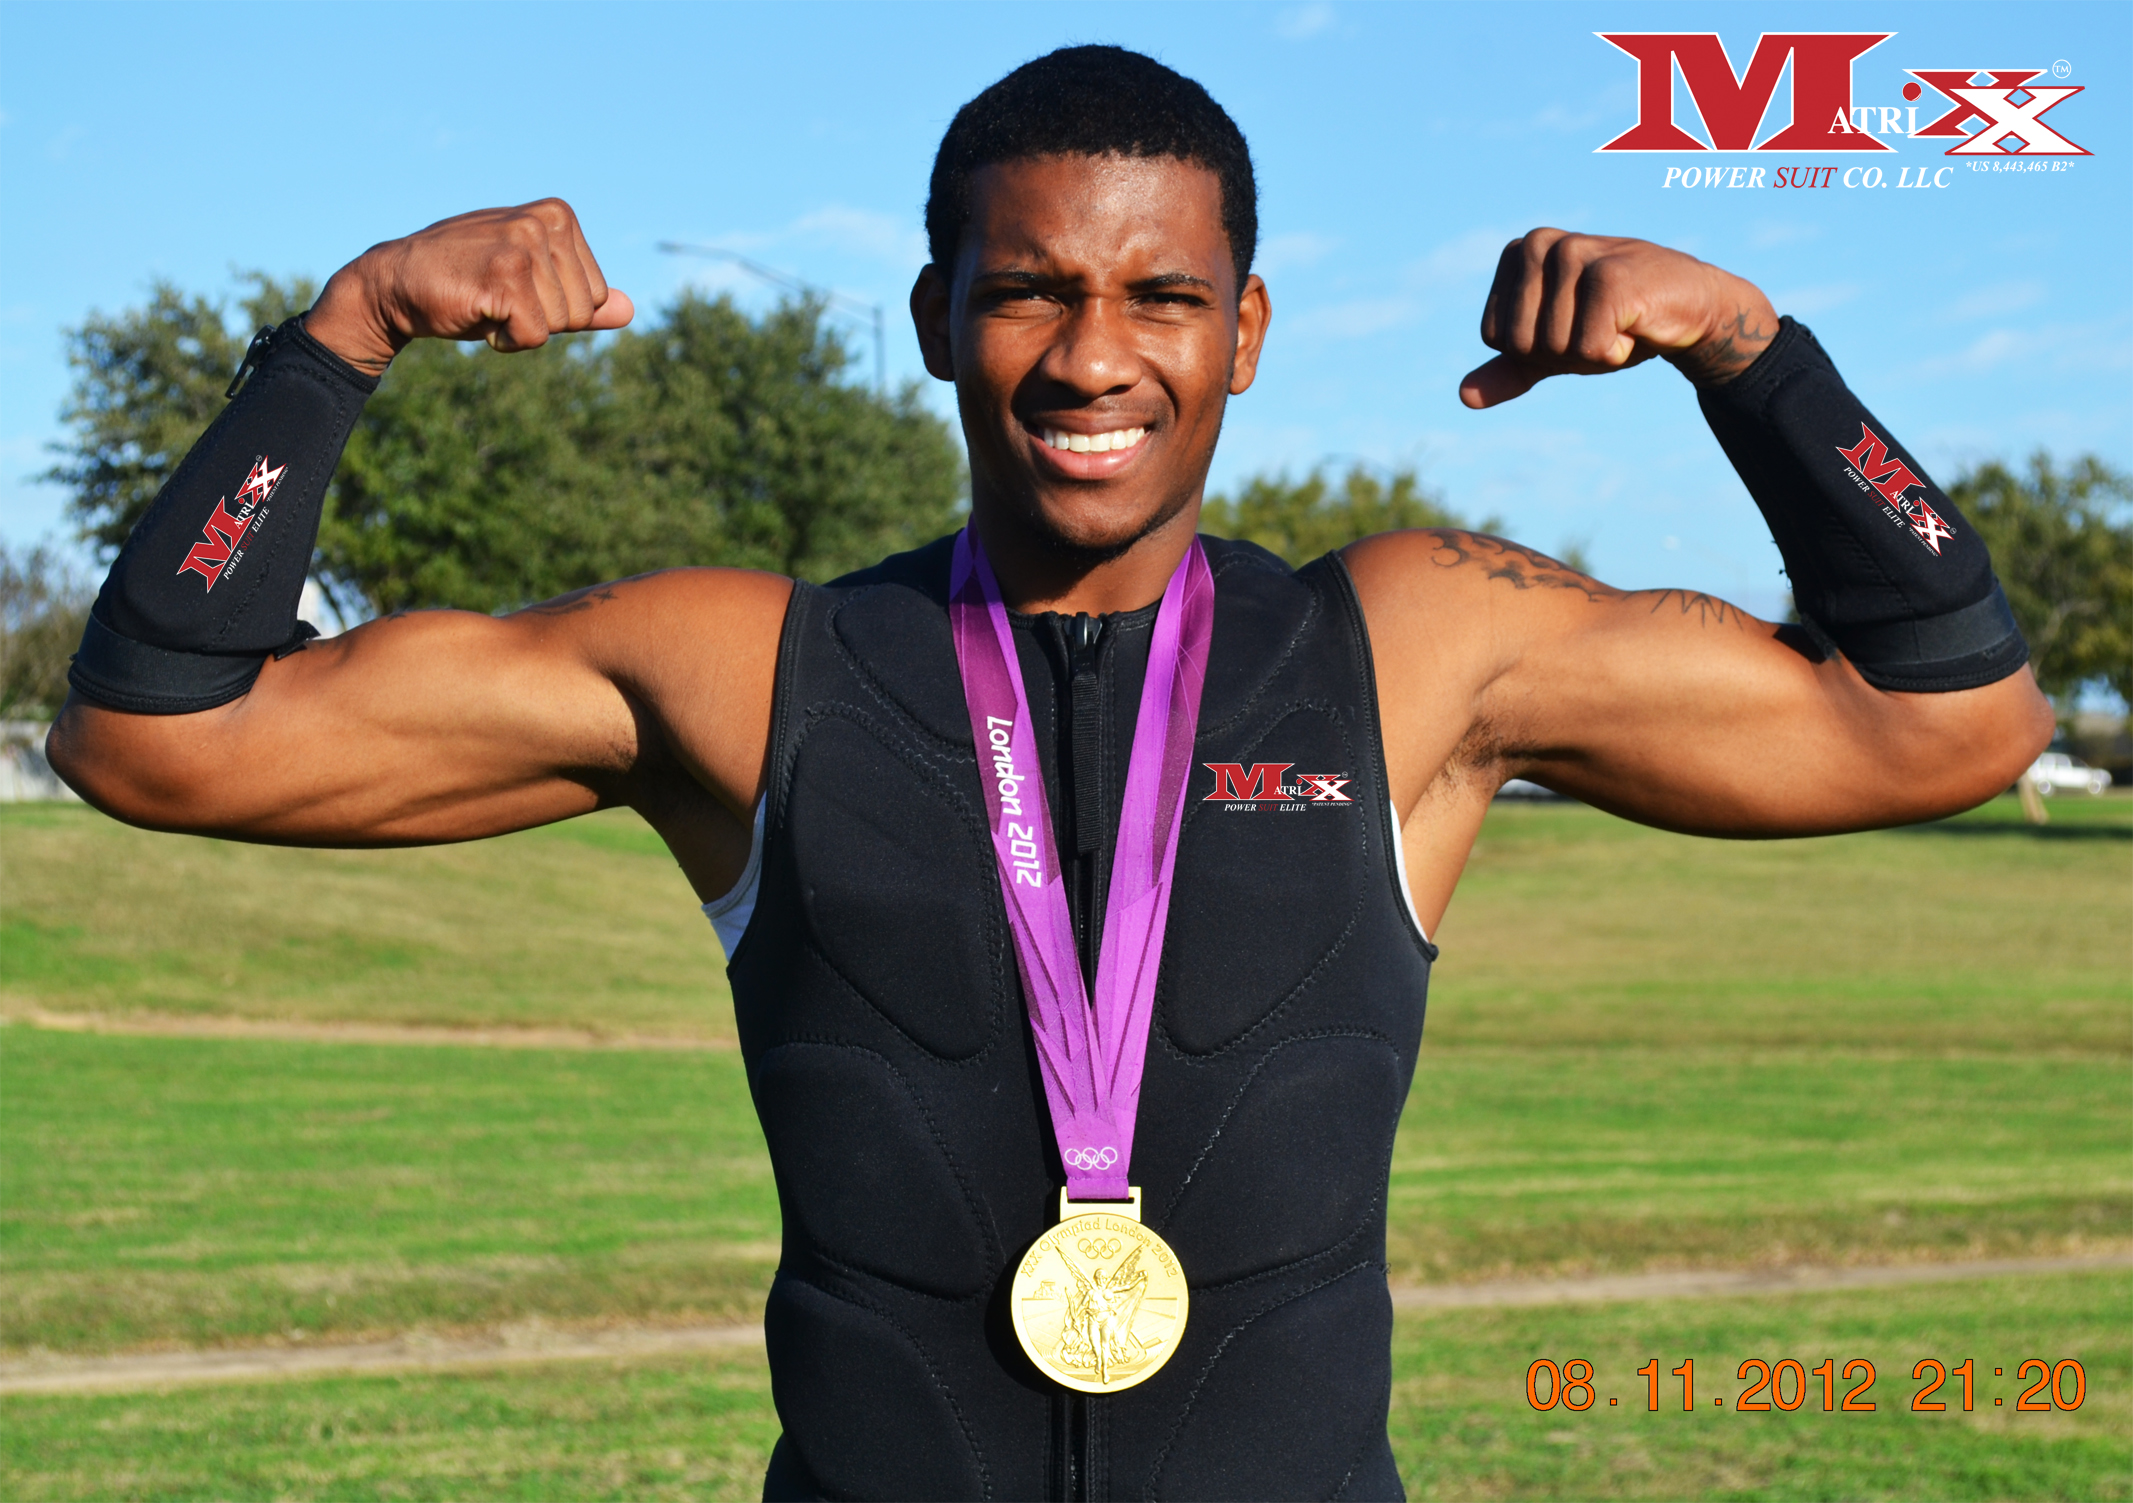 2012 Olympic Gold Medalist 400M RunnerDemetrius Pinder from the Bahamas